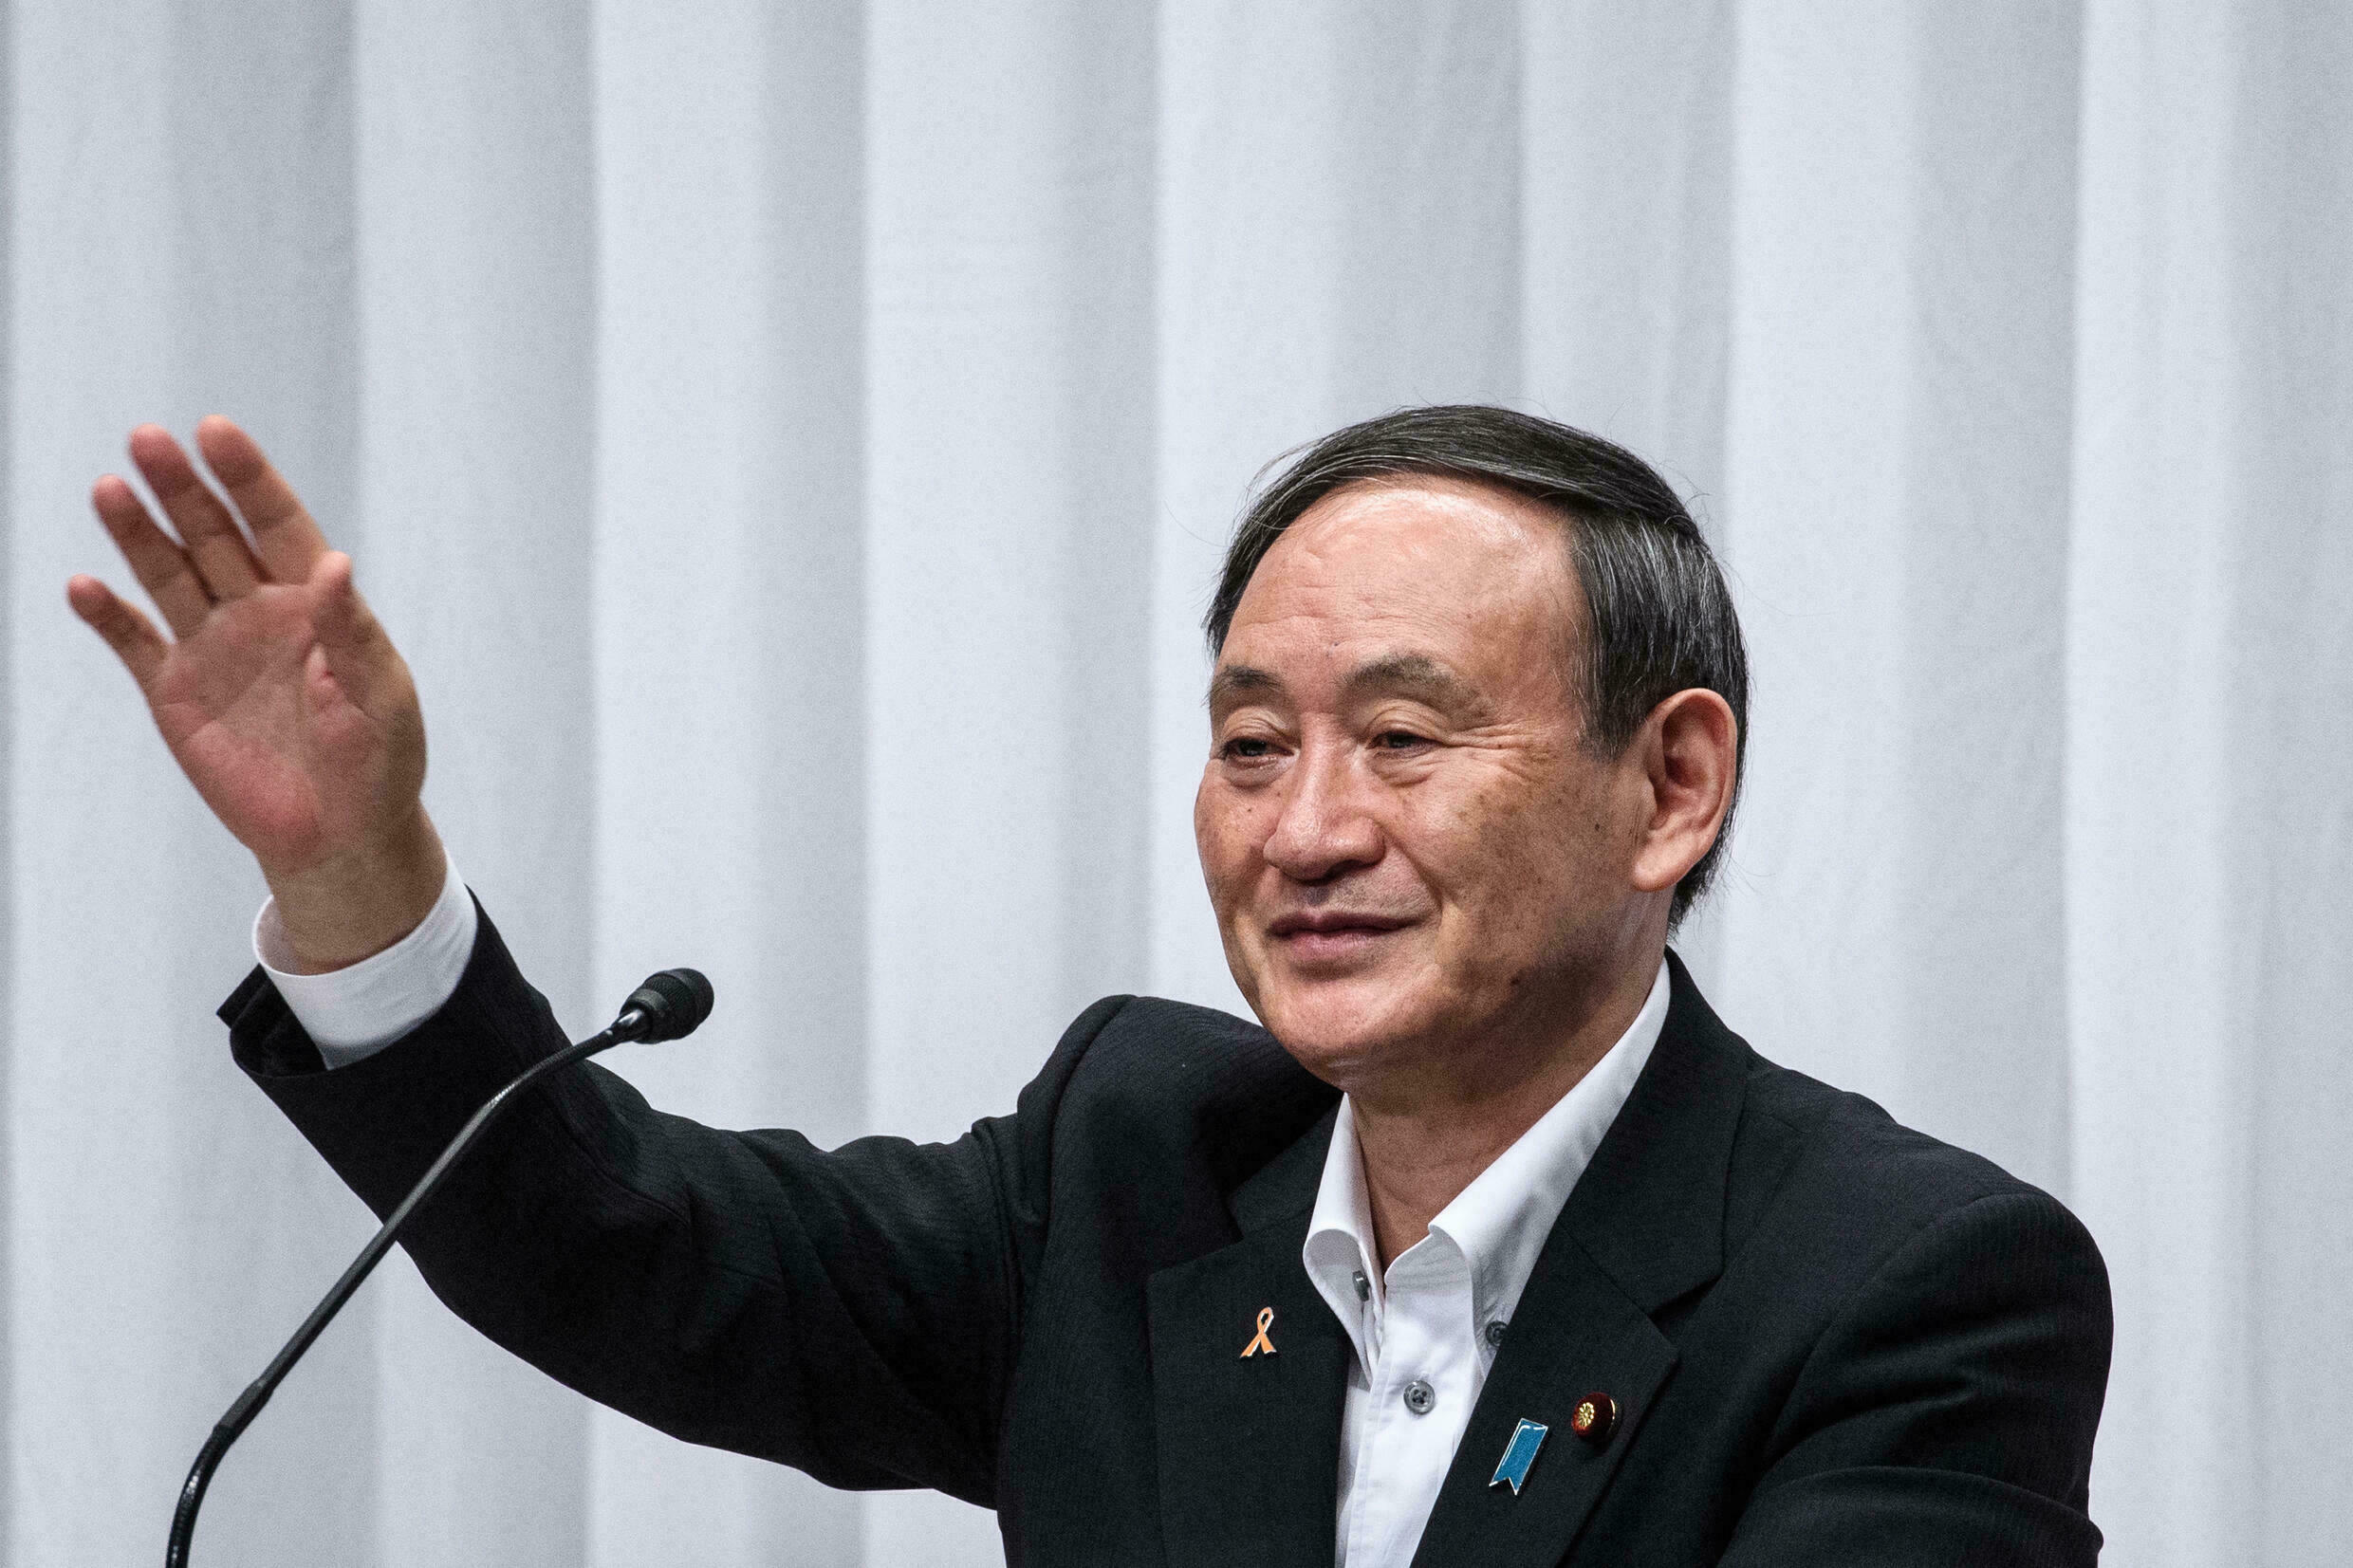 Japan's Prime Minister Yoshihide Suga will not contest his party's leadership vote, effectively ending his tenure as leader